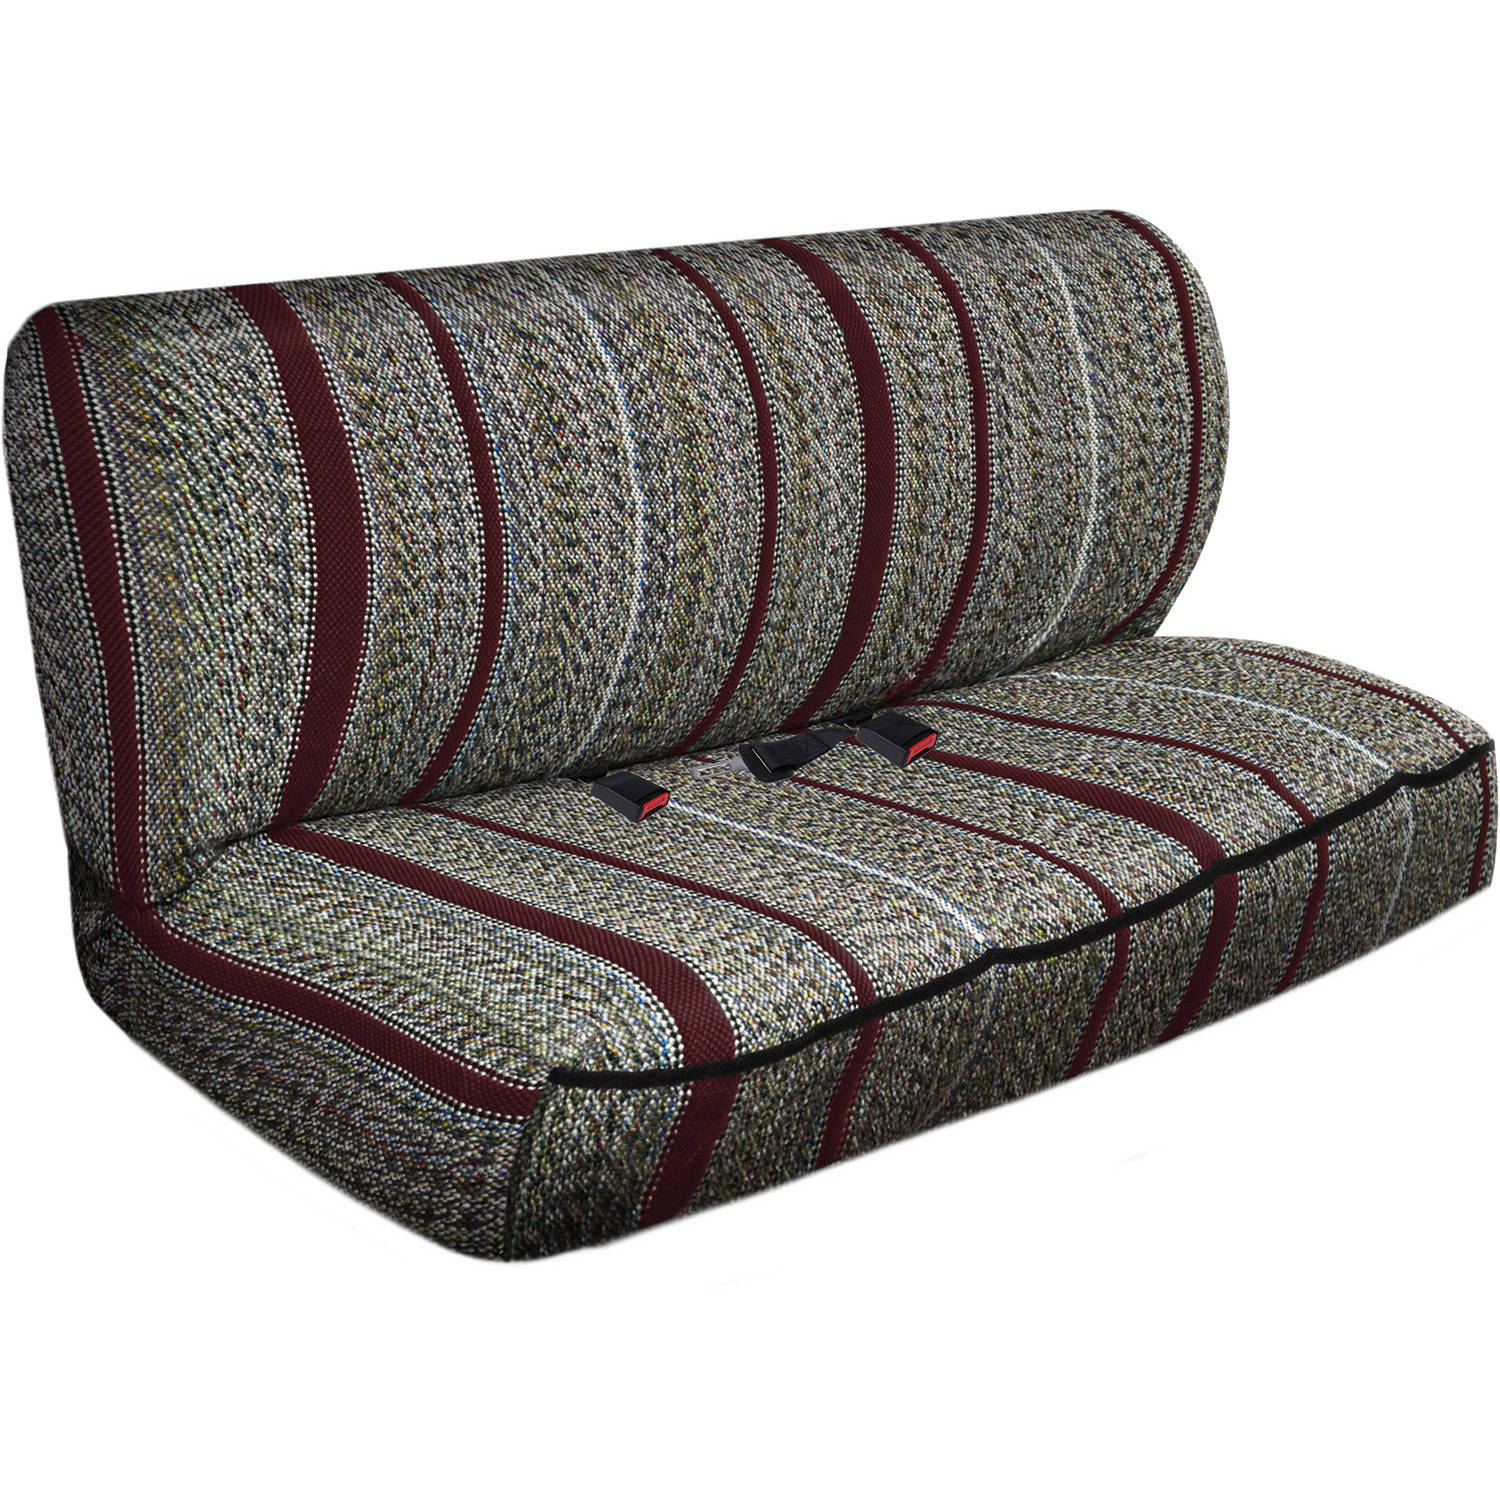 OxGord 2-Piece Full Size Heavy Duty Saddle Blanket Bench Seat Covers, Burgundy